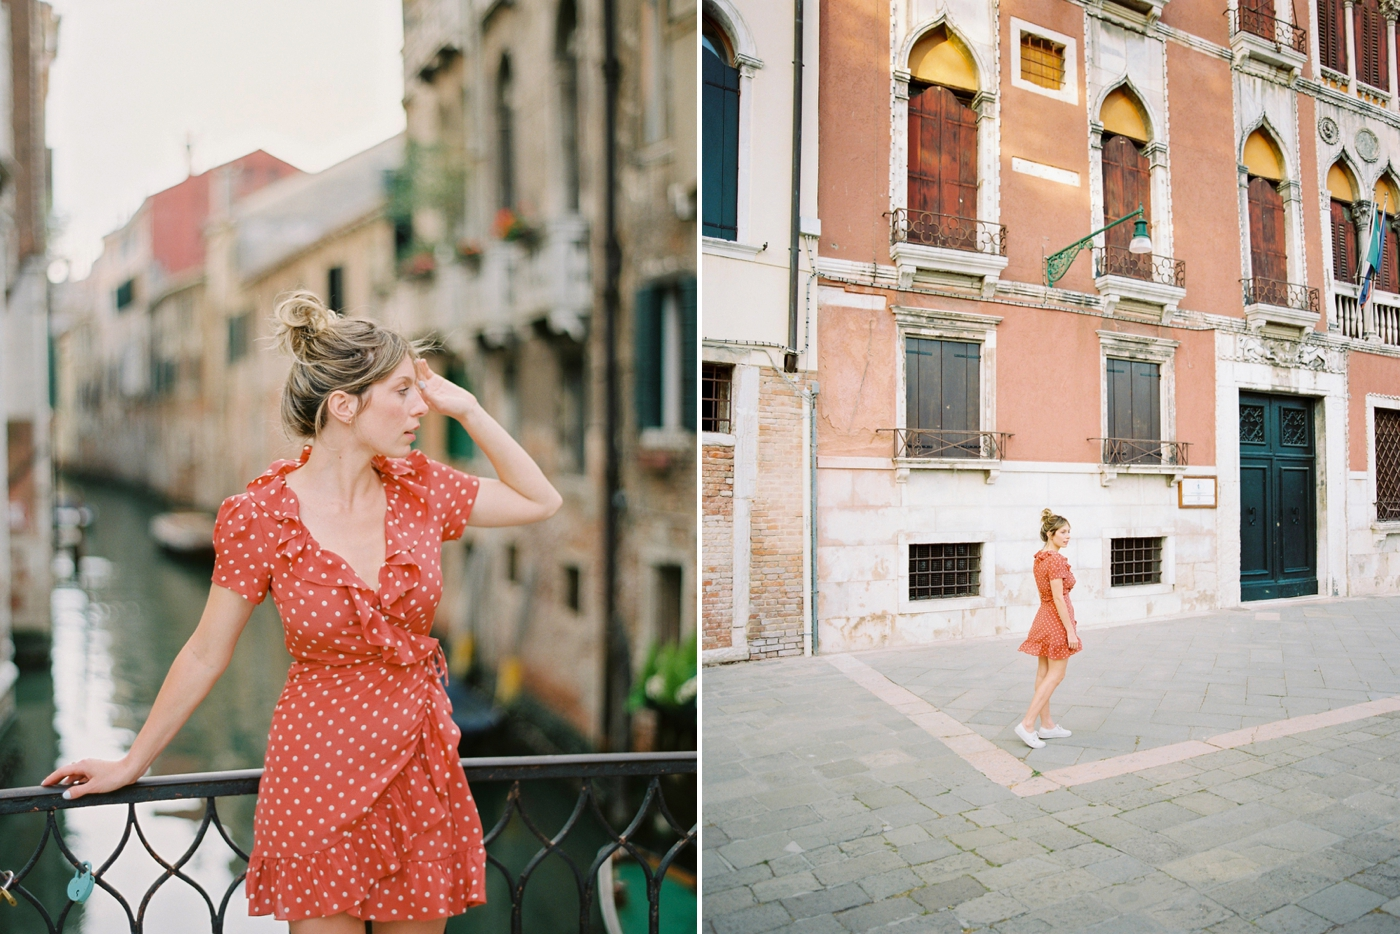 fashion and travel bloggers in Venice italy | couples photo session venice canals italy with Justine milton film photography